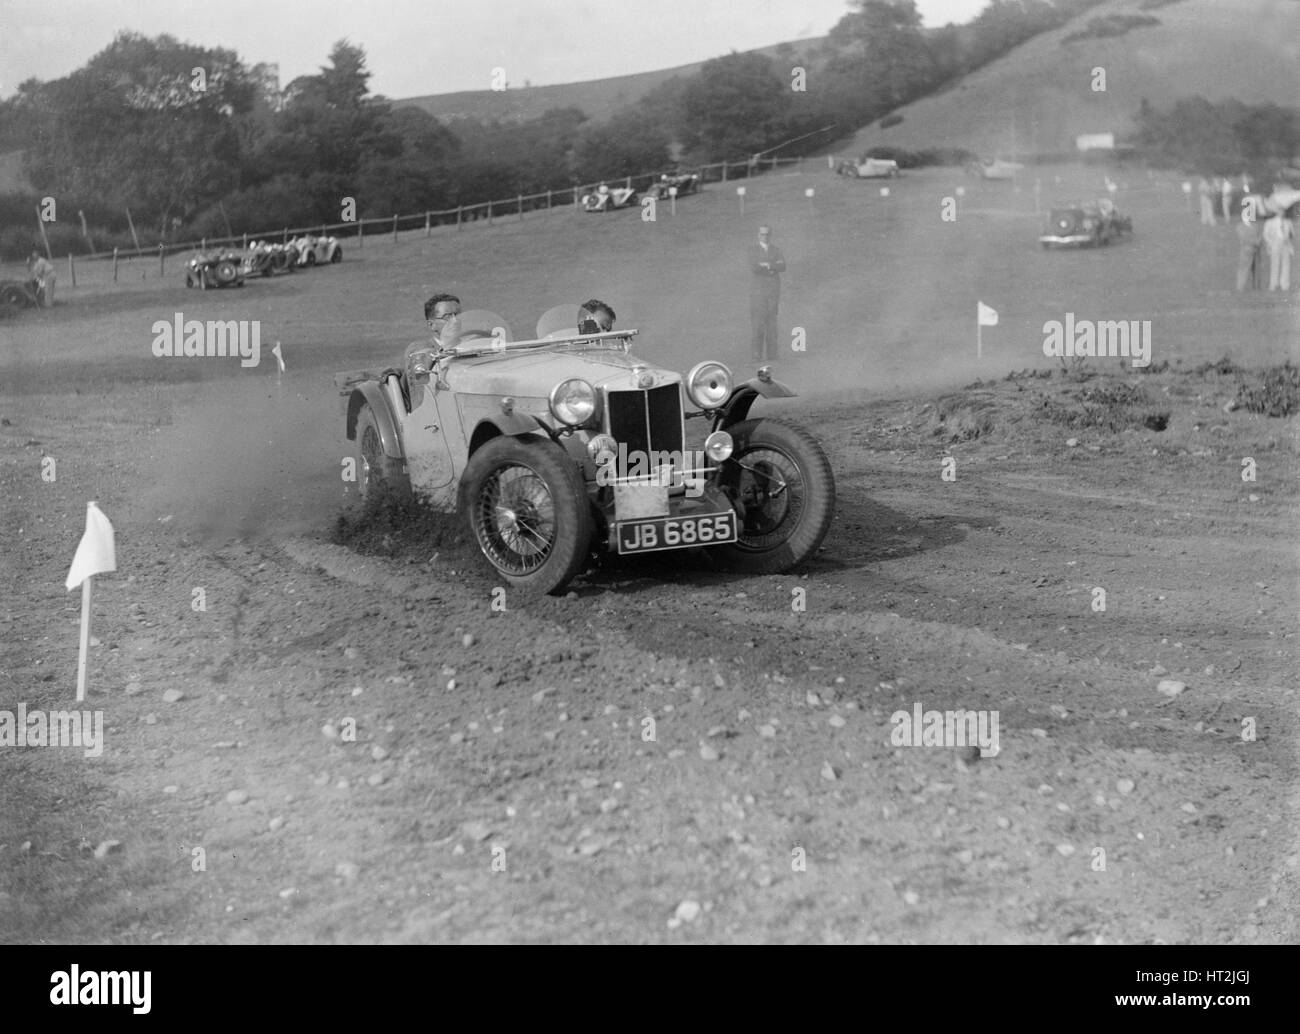 MG of L Welch of the Three Musketeers team at the Singer CC Rushmere Hill Climb, Shropshire 1935. Artist: Bill Brunell. - Stock Image